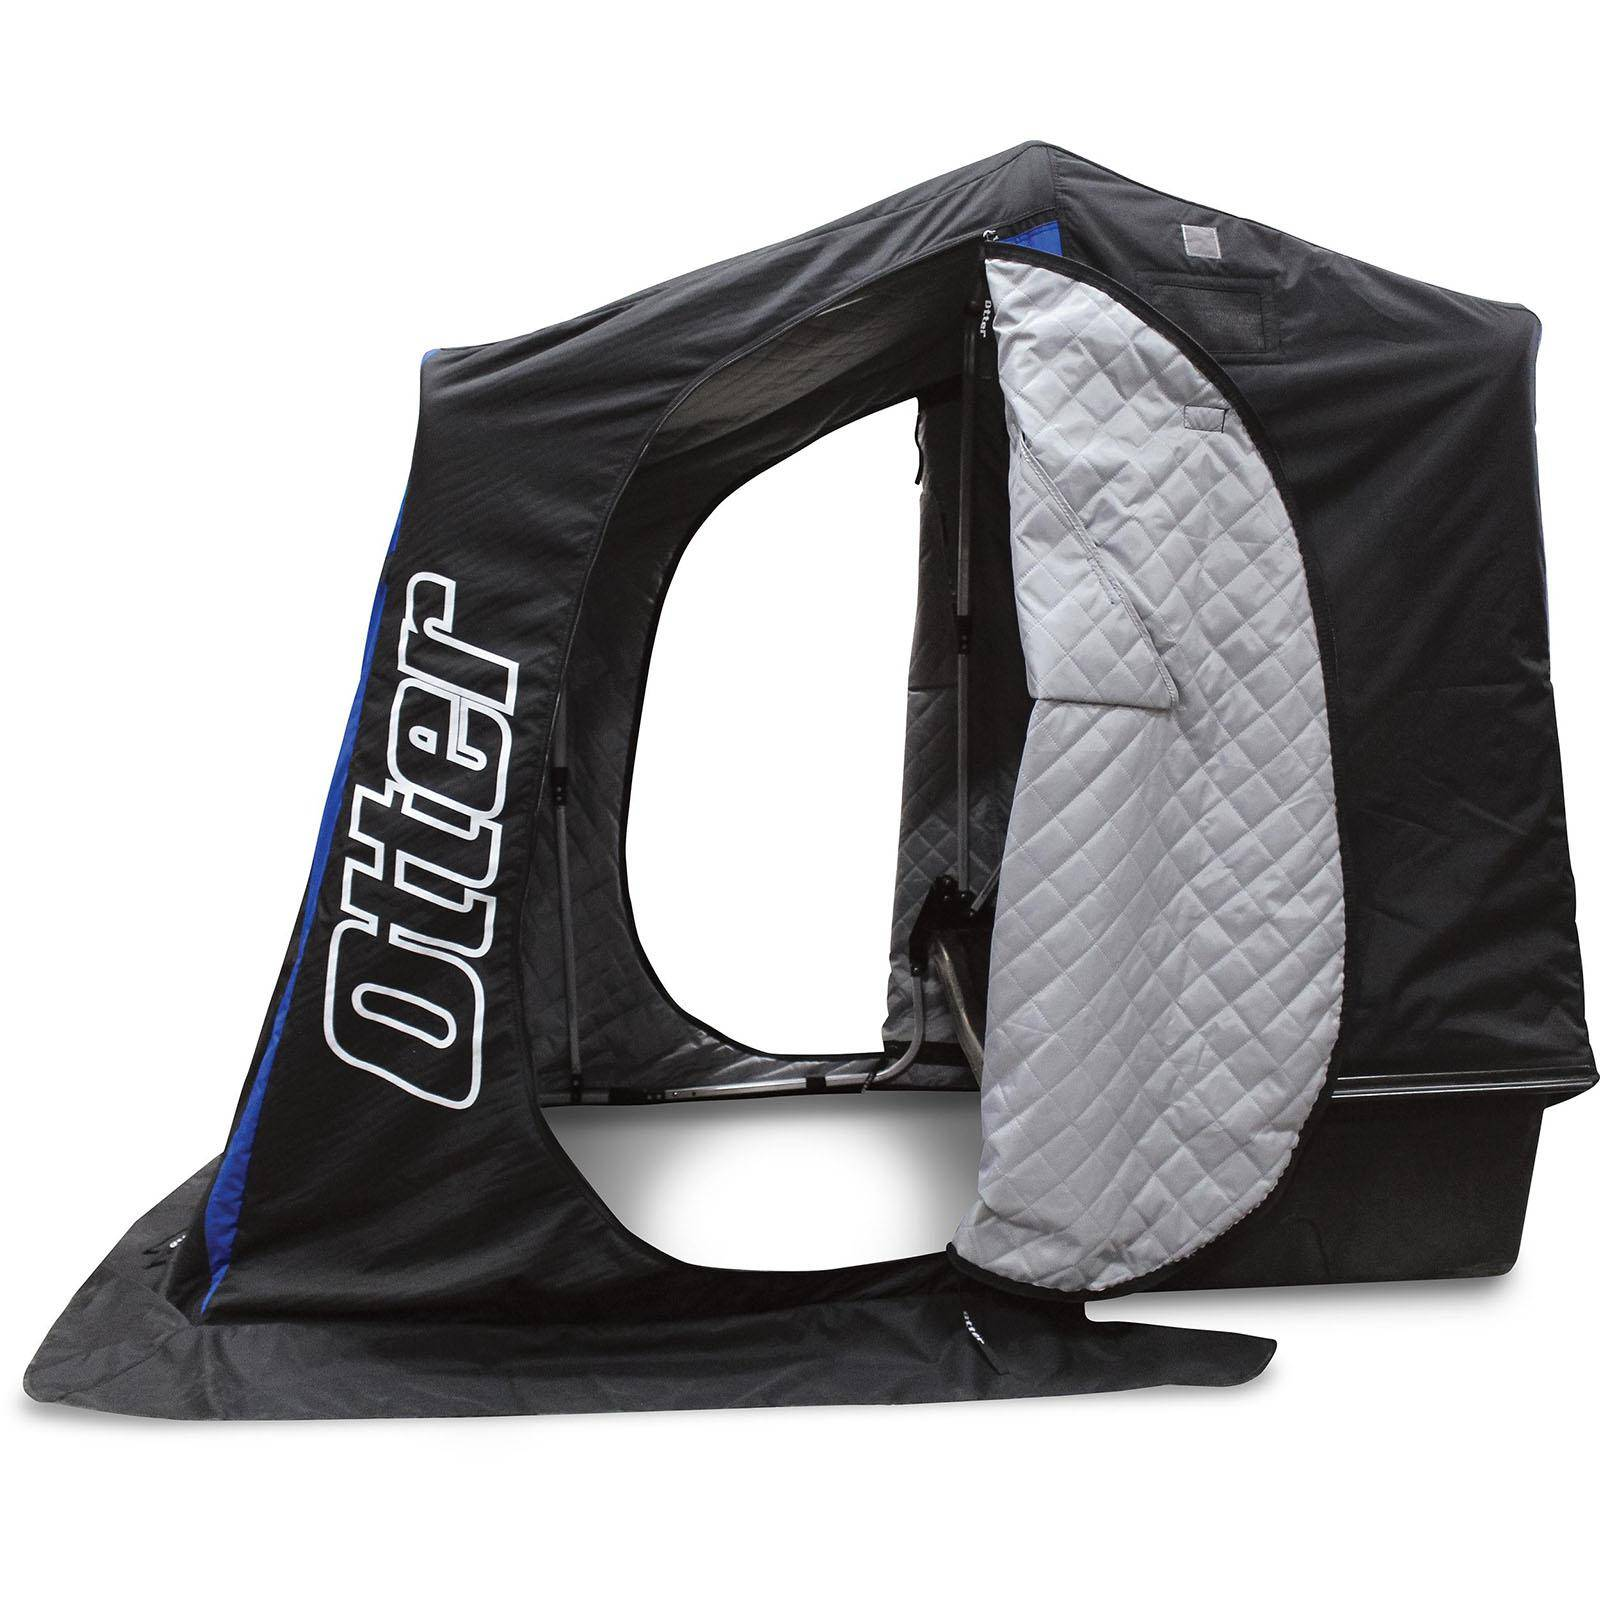 Otter Outdoors XT X-Over Ice Shelter Cabin